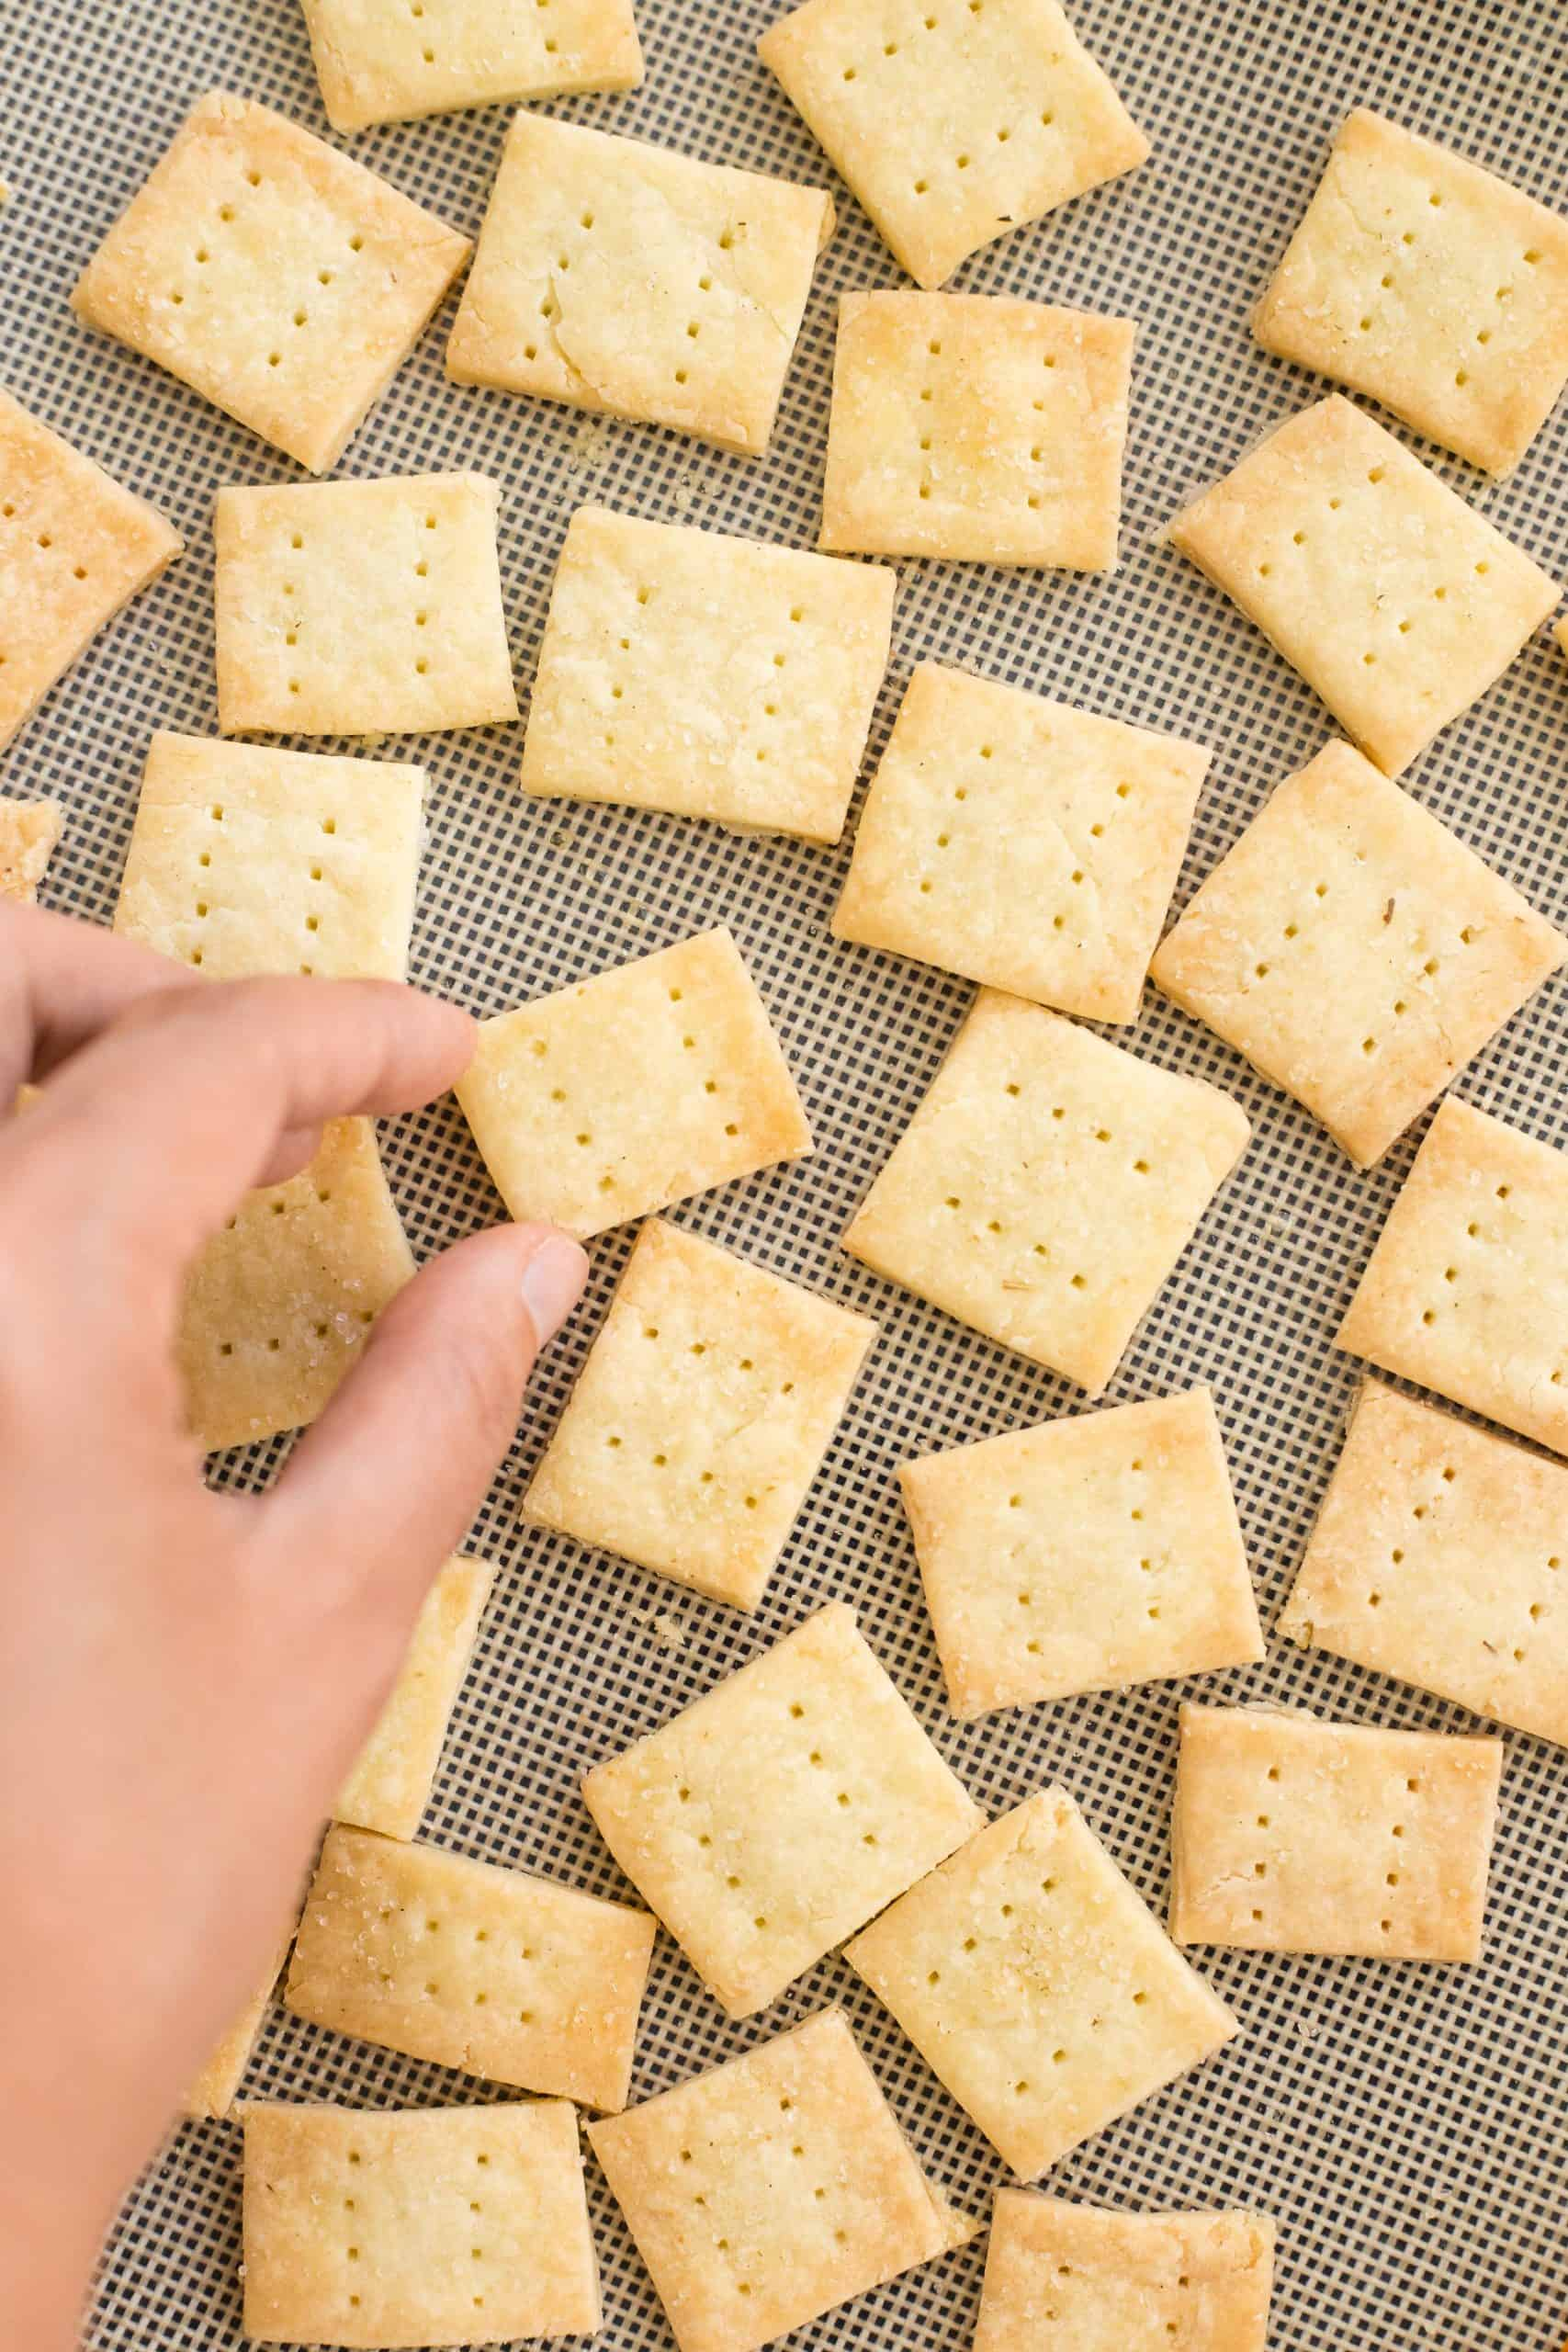 Reaching for a cracker on a silpat-lined baking sheet.